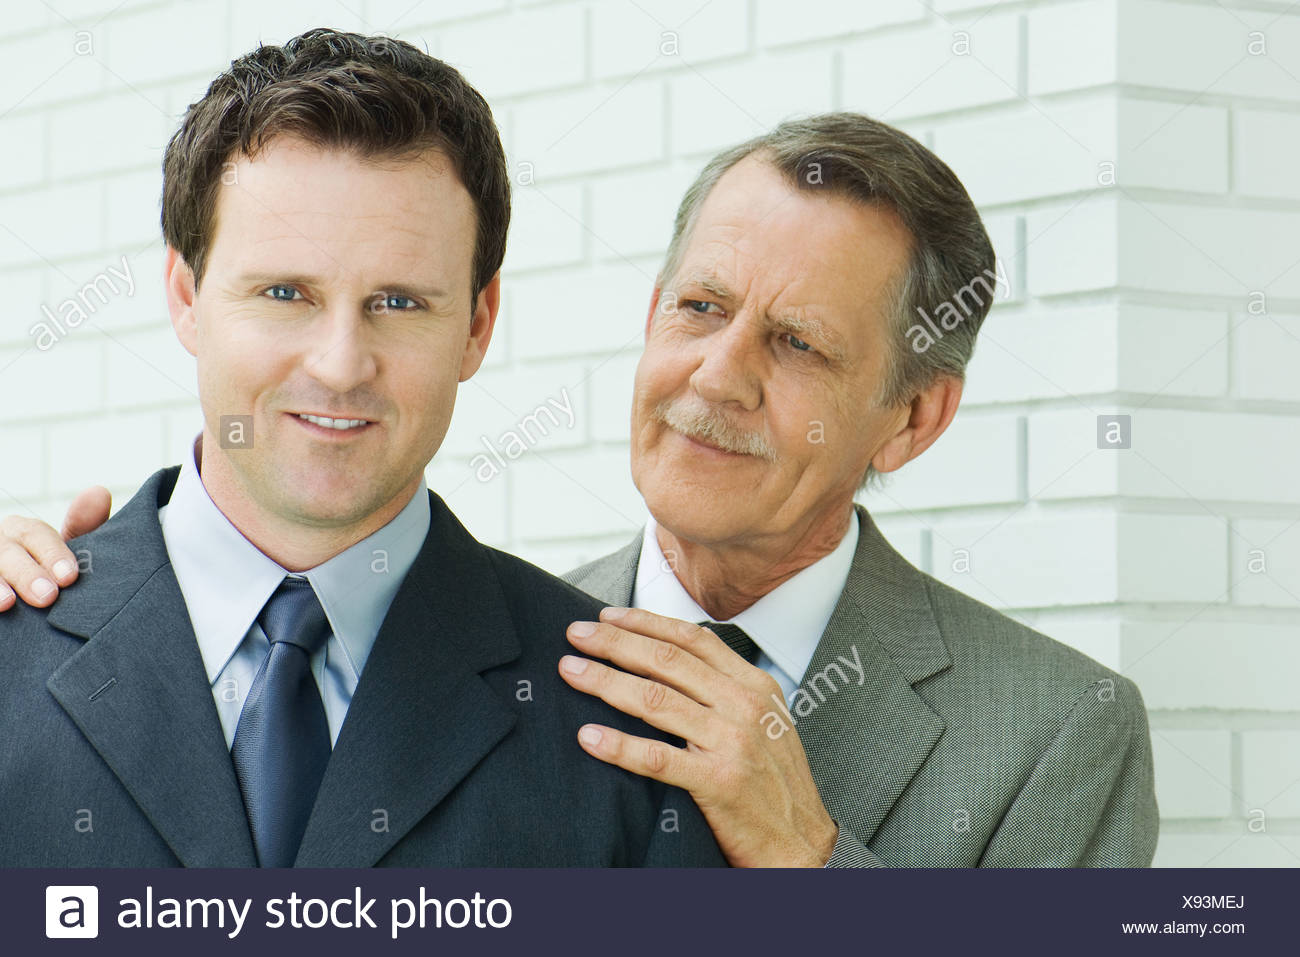 Businessman with hands on younger associate's shoulders, associate smiling at camera - Stock Image